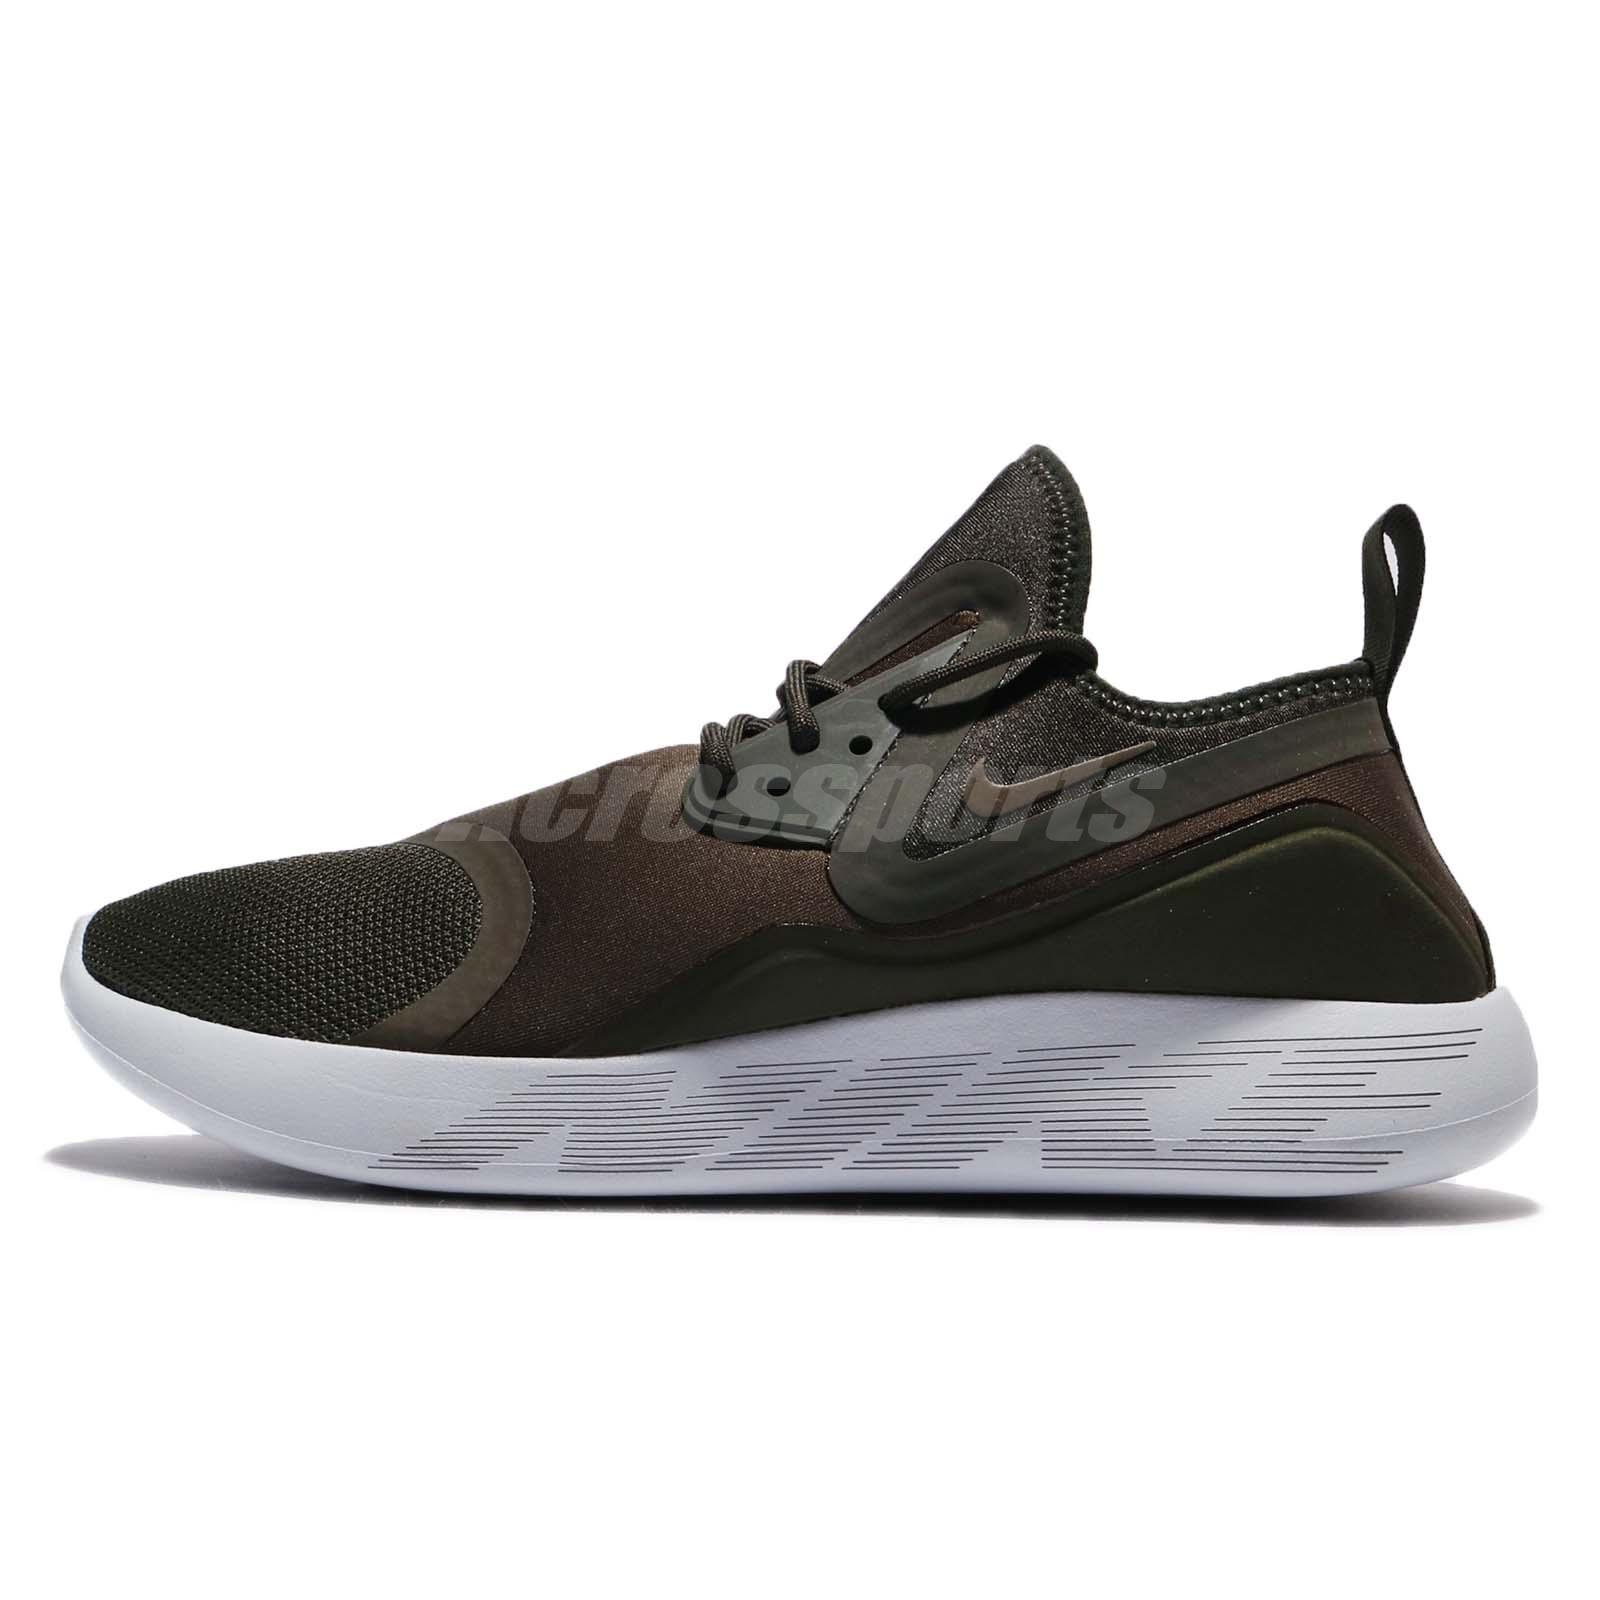 1803 Nike LunarCharge Essential Men's Training Running Shoes 923619-302